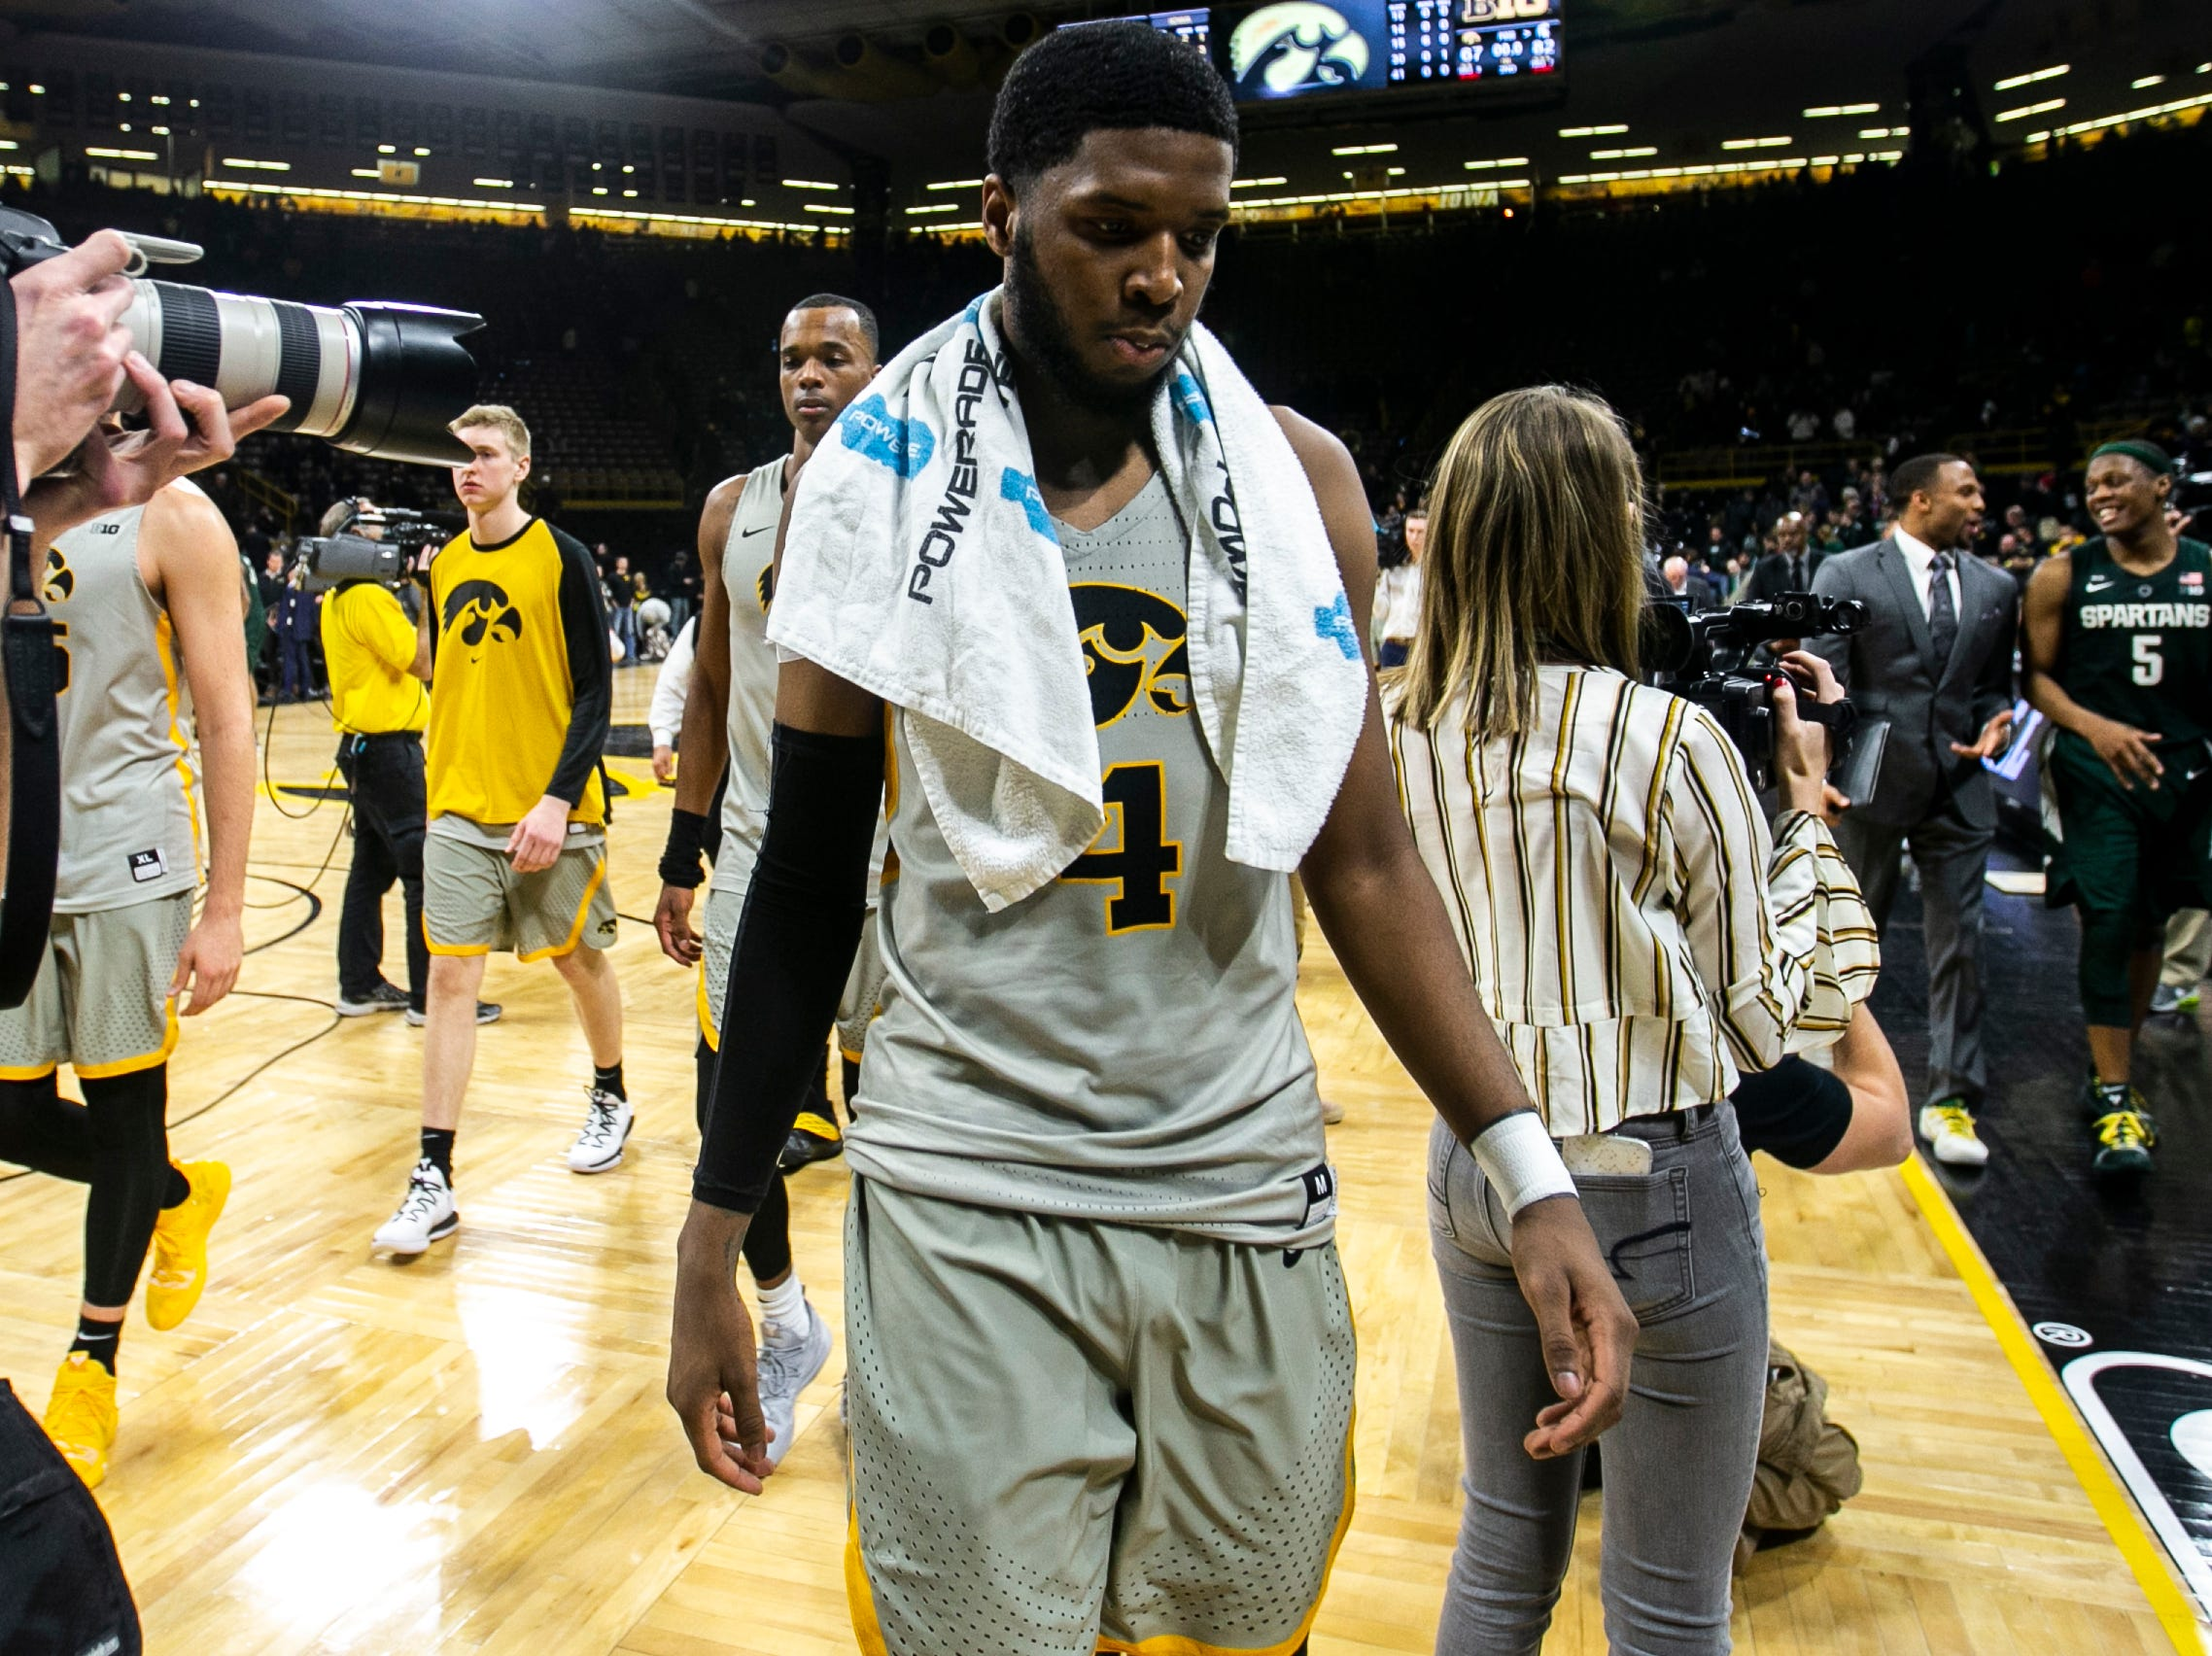 Iowa guard Isaiah Moss (4) walks off the court during a NCAA Big Ten Conference men's basketball game on Thursday, Jan. 24, 2019, at Carver-Hawkeye Arena in Iowa City, Iowa.